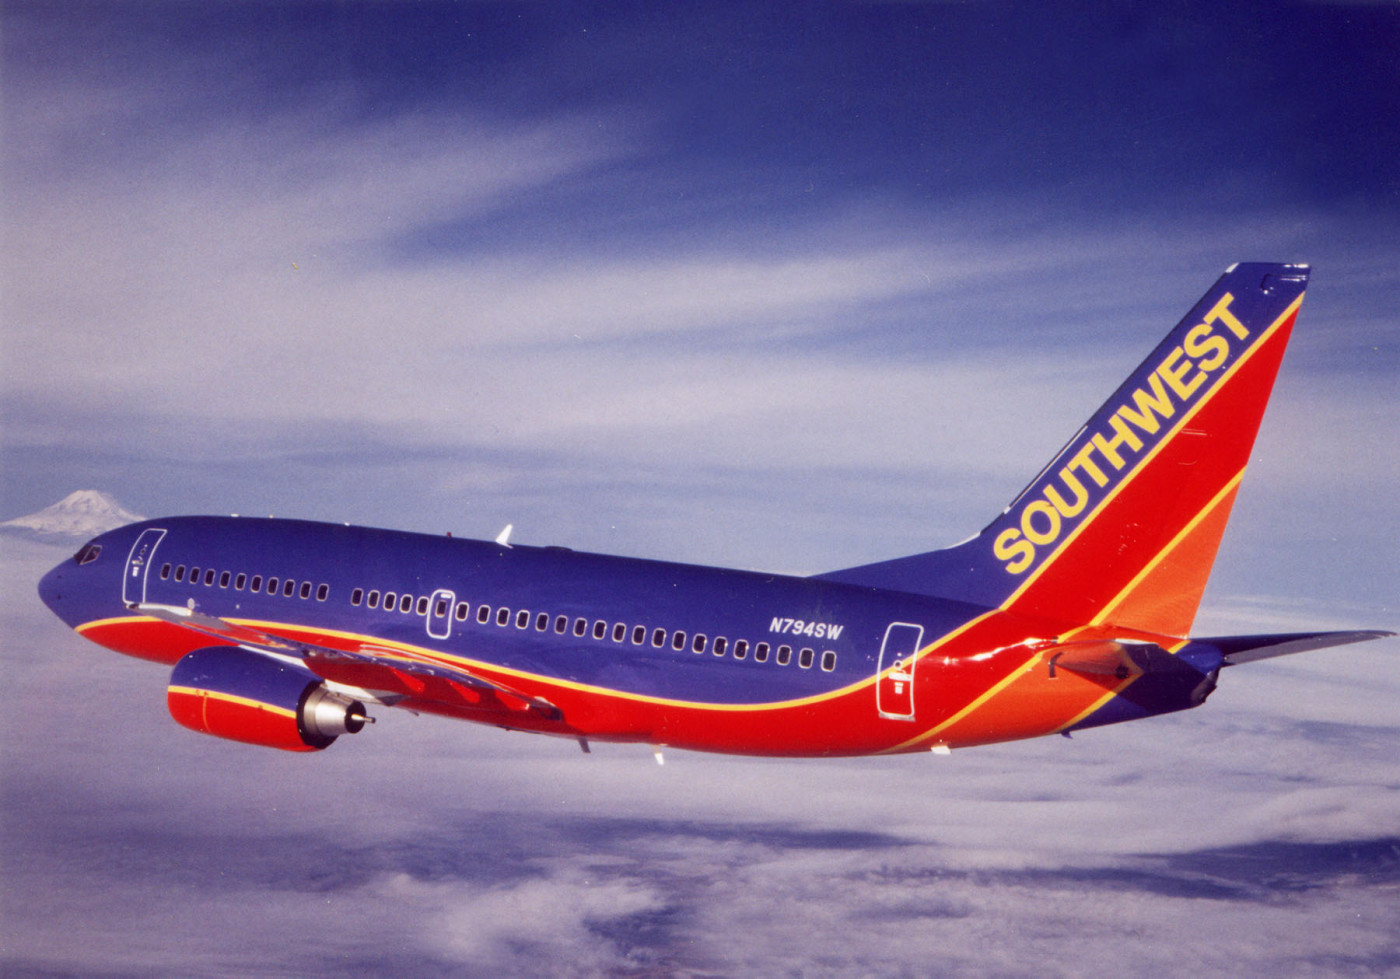 Southwest airlines rapid rewards the ultimate guide loungebuddy i want to earn points what do i do colourmoves